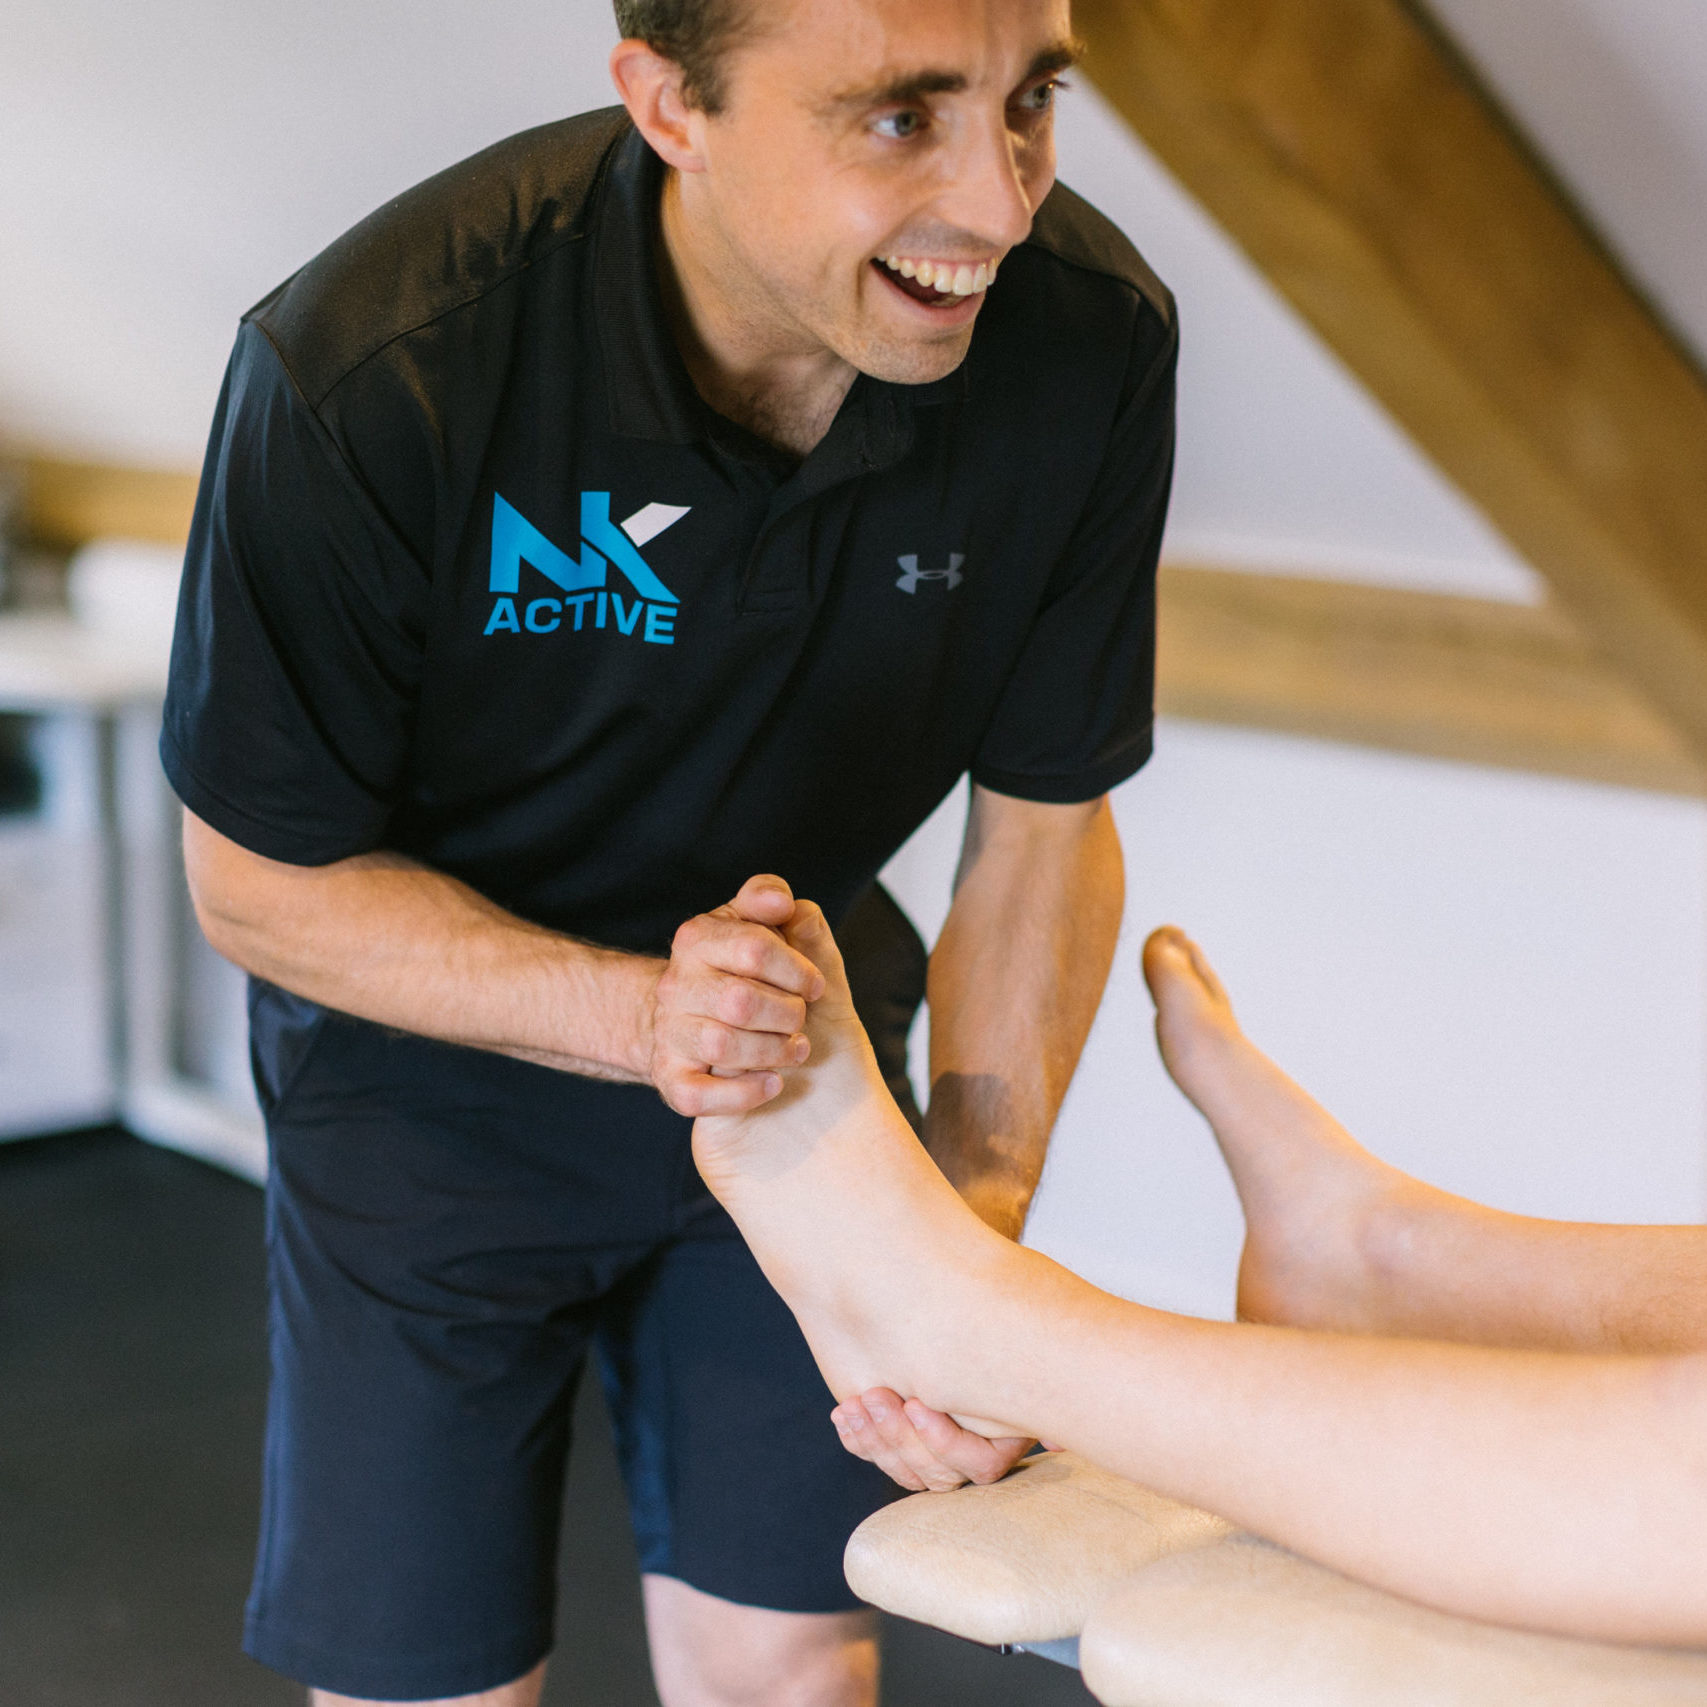 foot and ankle injuries explained | NK Active